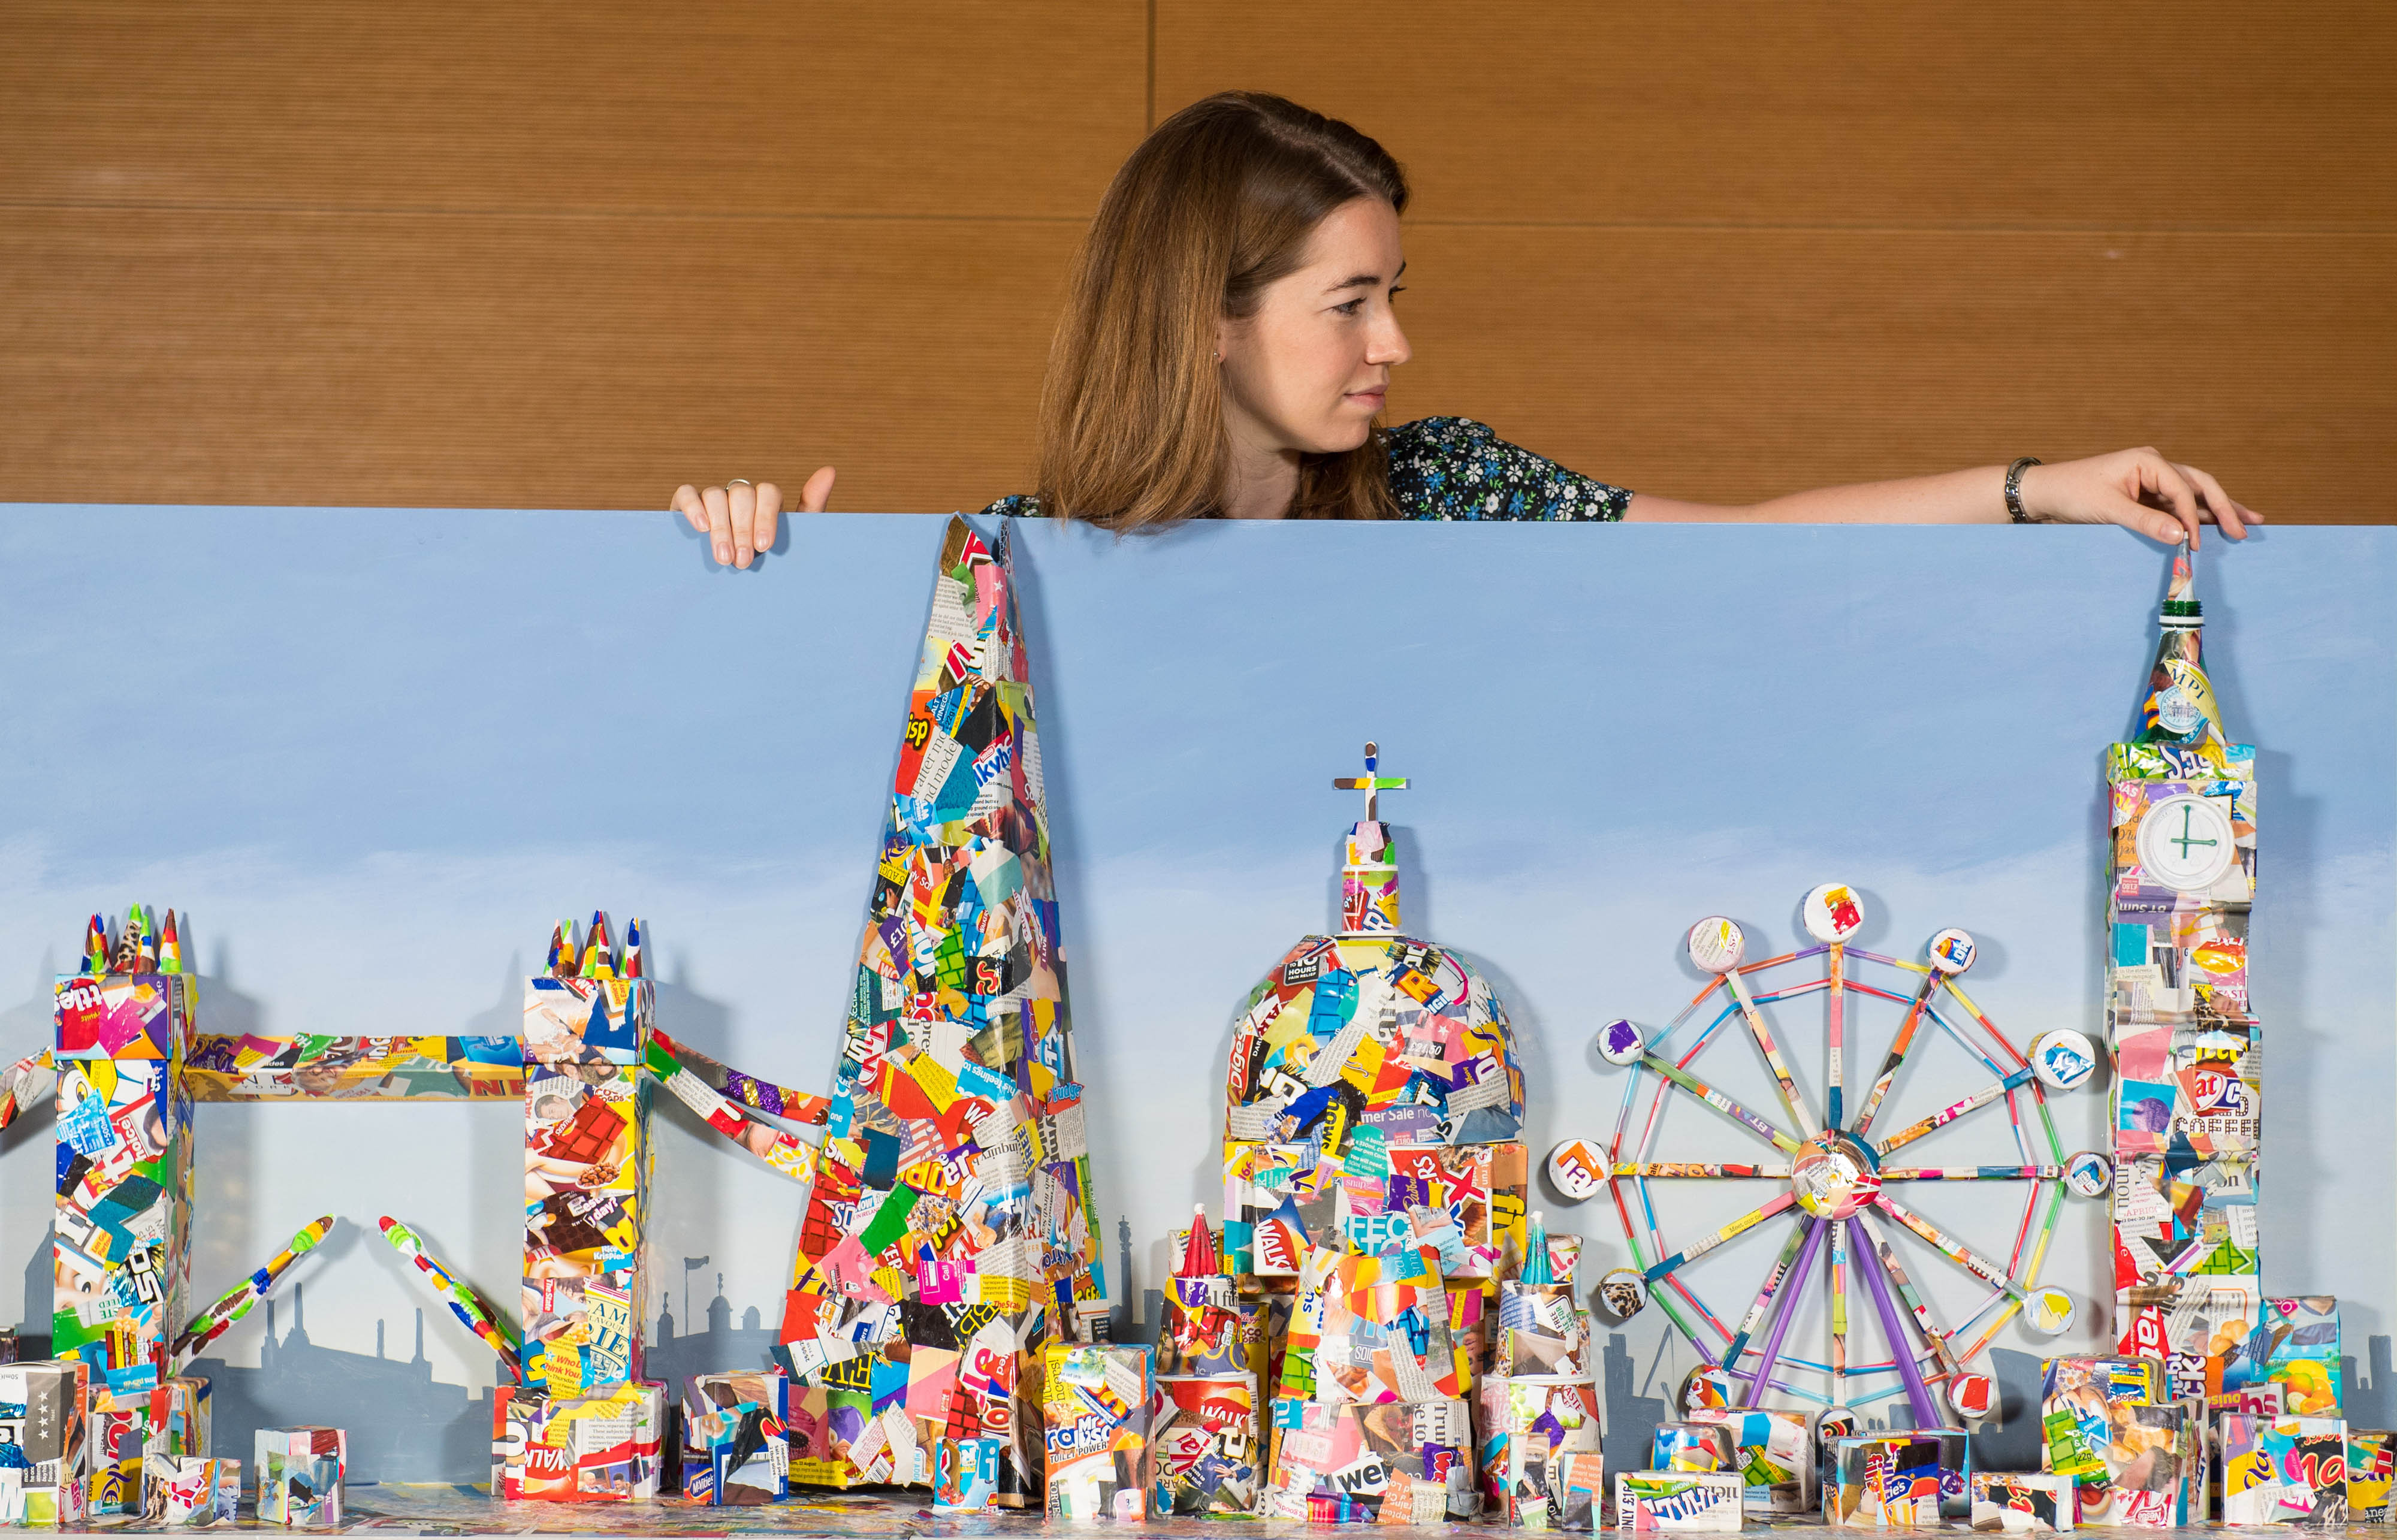 Laura Jackson views an artwork showing the London skyline created entirely from recycled litter at the Museum of London as part of The City is Ours exhibition, which explores both the joys and frustrations of city life. PRESS ASSOCIATION. Picture date: Tuesday August 22 2017. On until 2 January 2018, the interactive exhibition ponders what the future holds for London and tackles issues such as population growth, recycling, air quality, transport, green spaces and what we as citizens can do to make our cities more sustainable. Photo credit should read: Dominic Lipinski/PA Wire